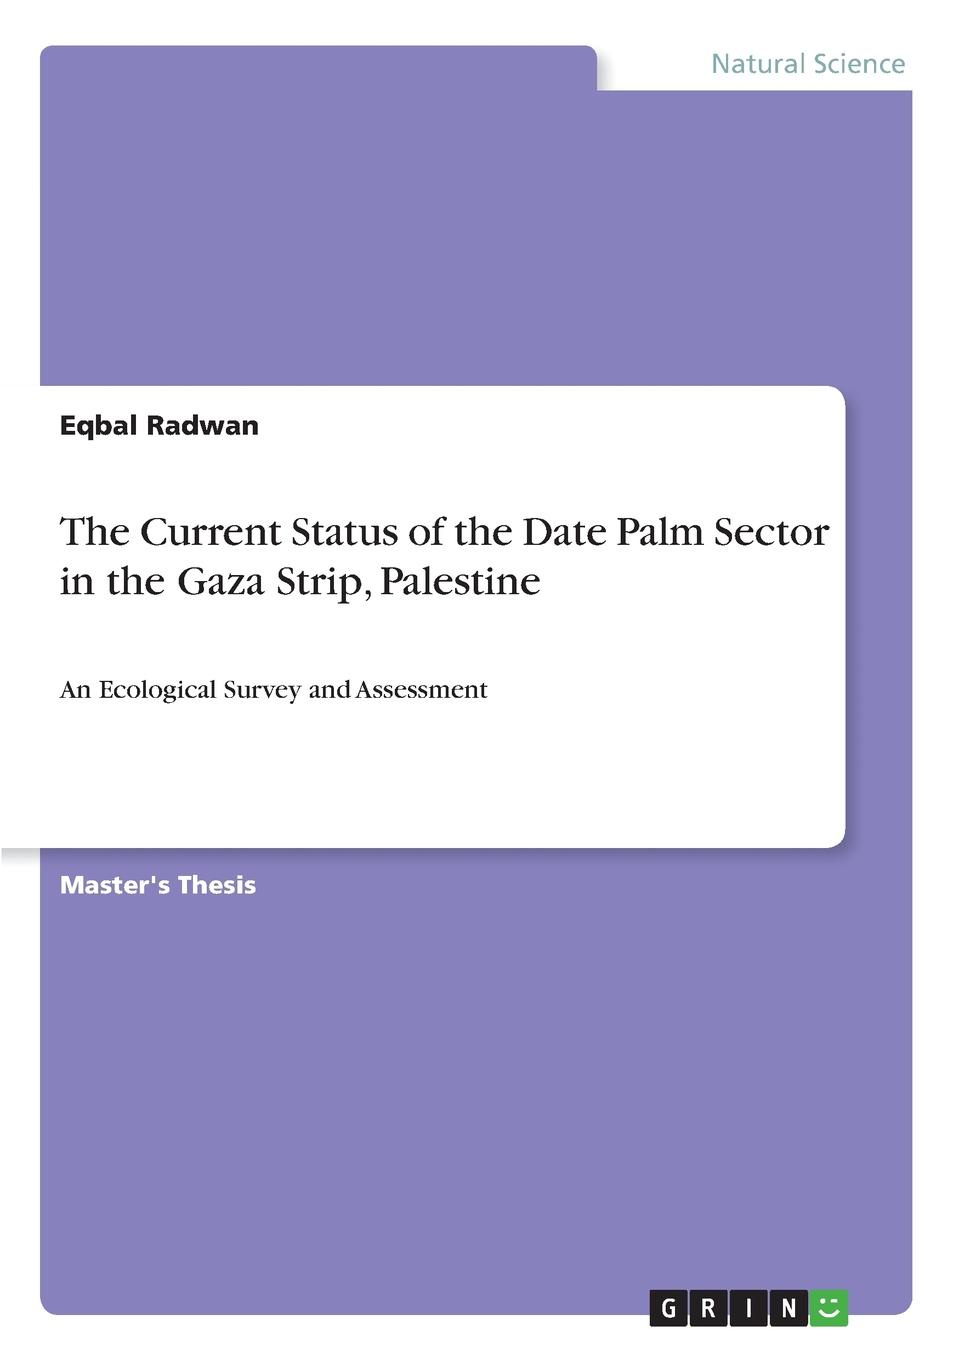 Eqbal Radwan The Current Status of the Date Palm Sector in the Gaza Strip, Palestine arthur morris israel and palestine gaza